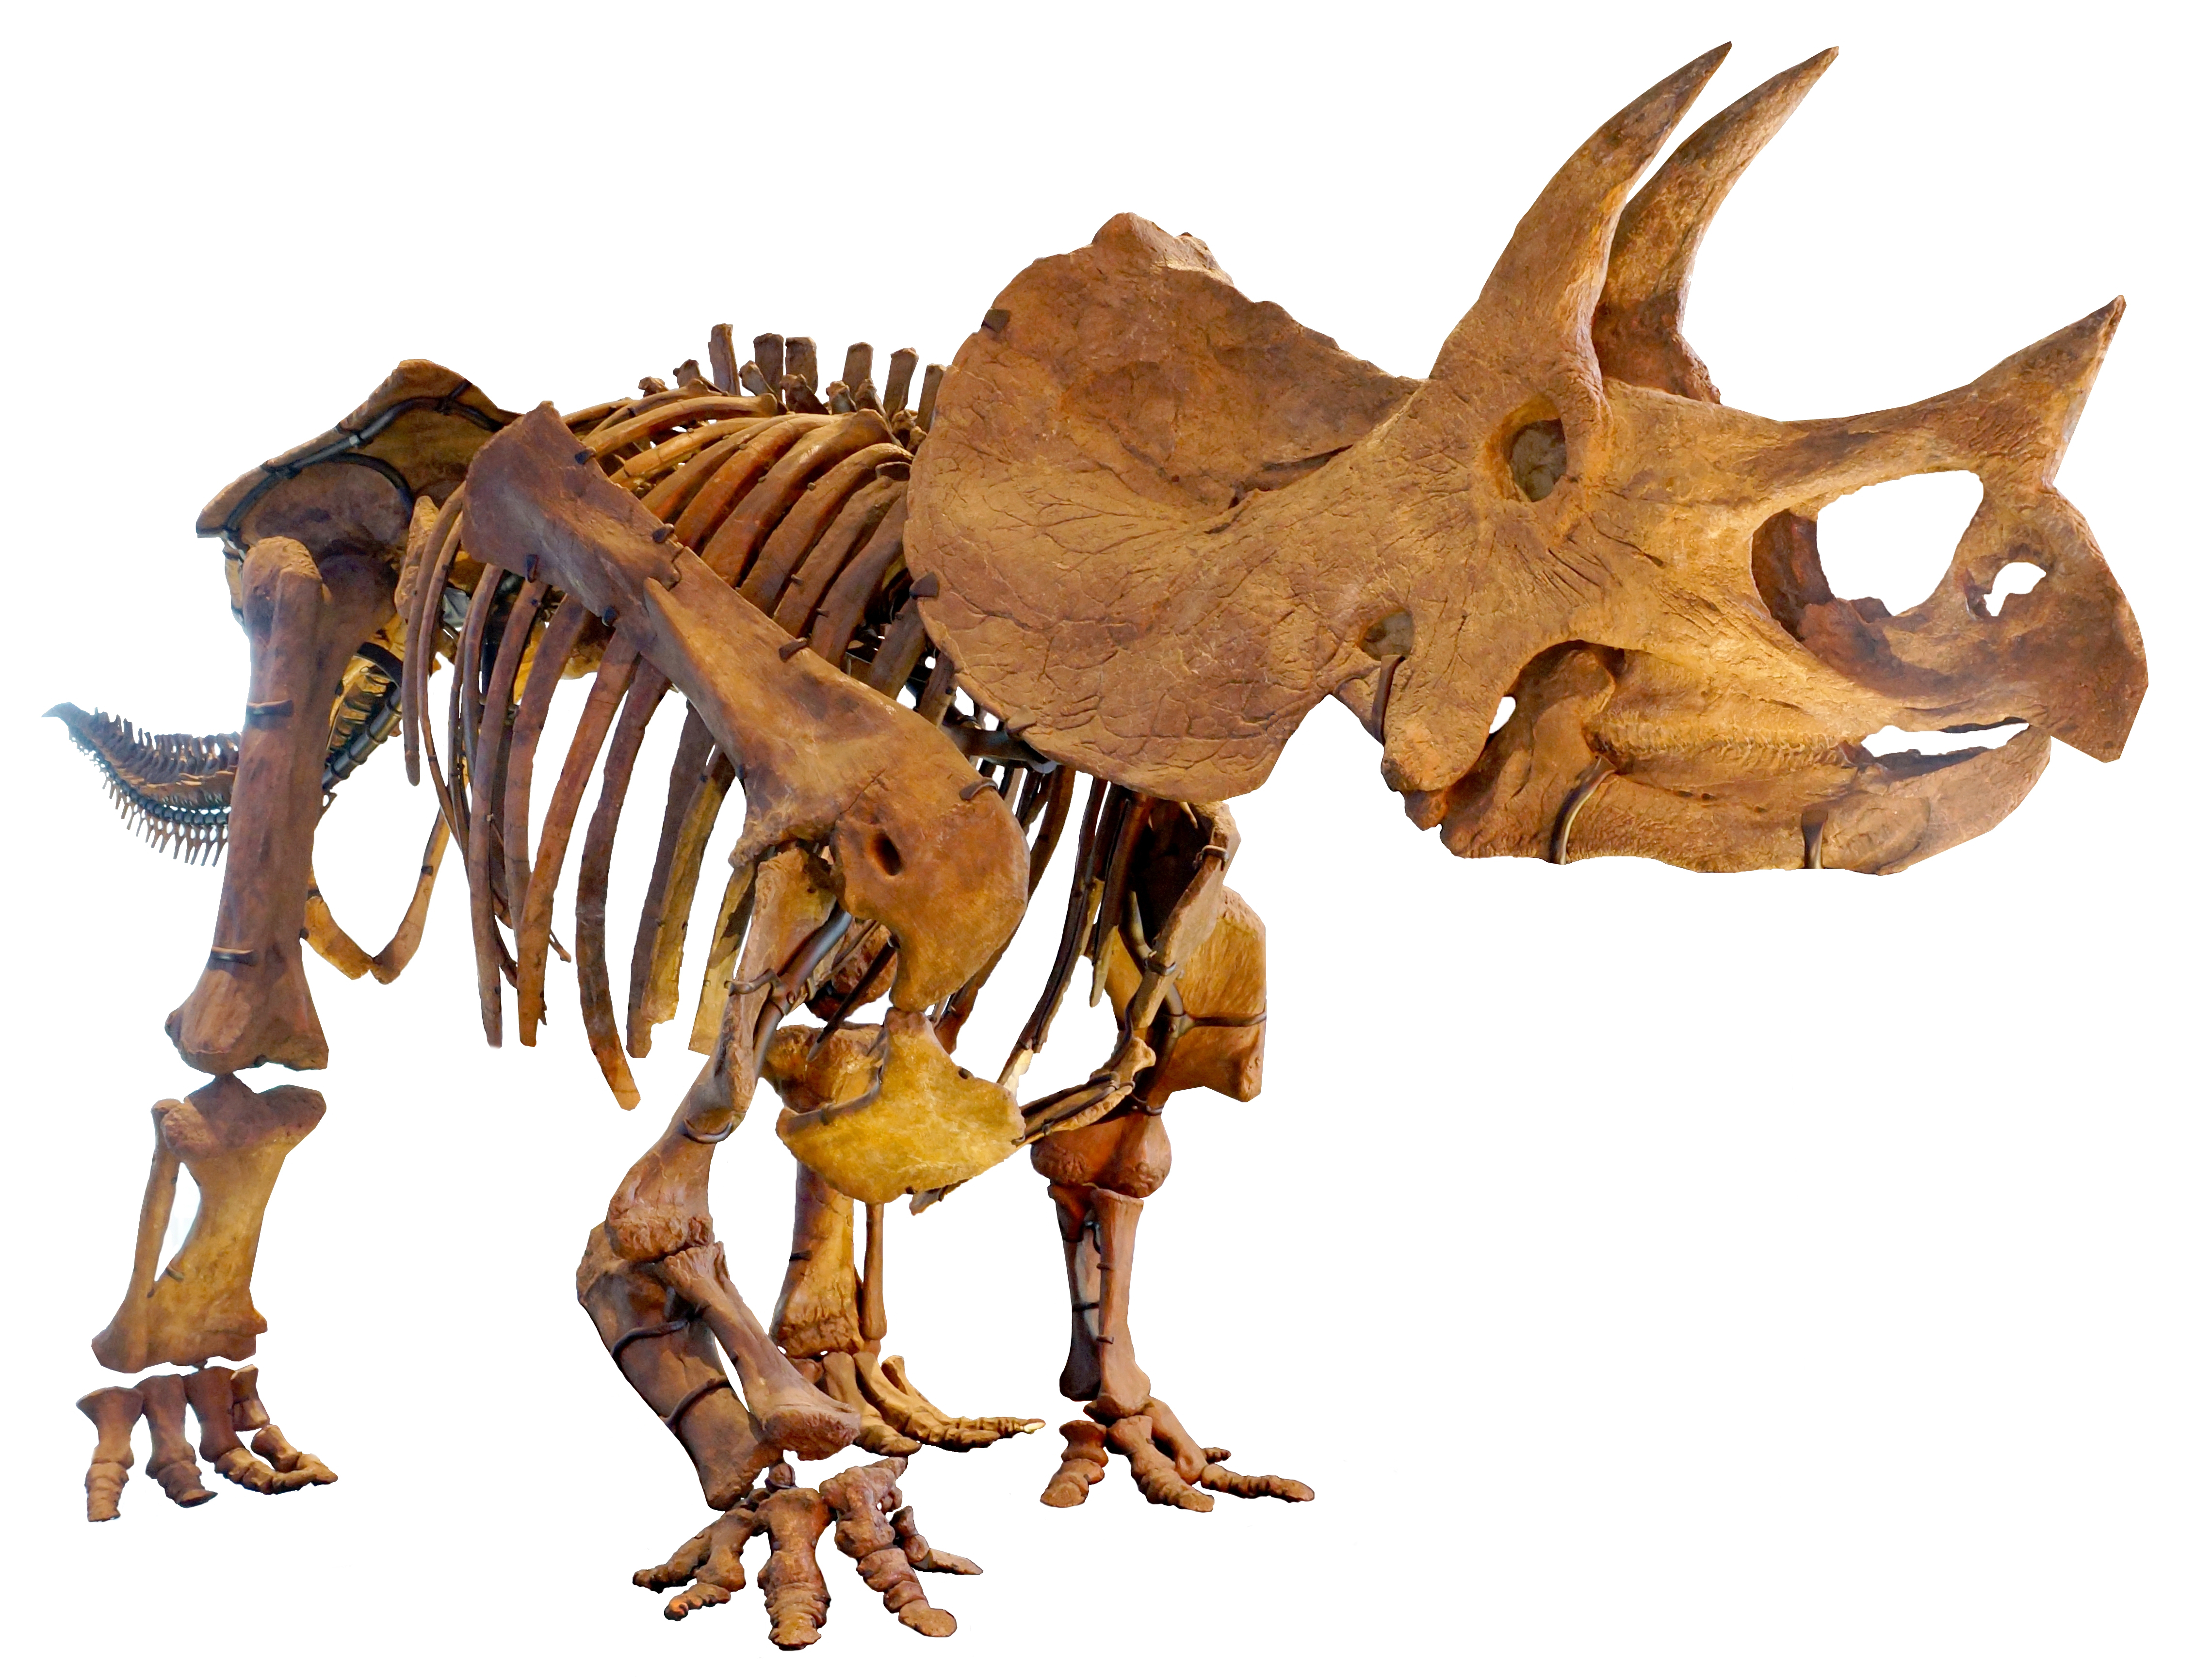 Small horned dinosaur from China, a Triceratops relative ... |Triceratops Dinosaur